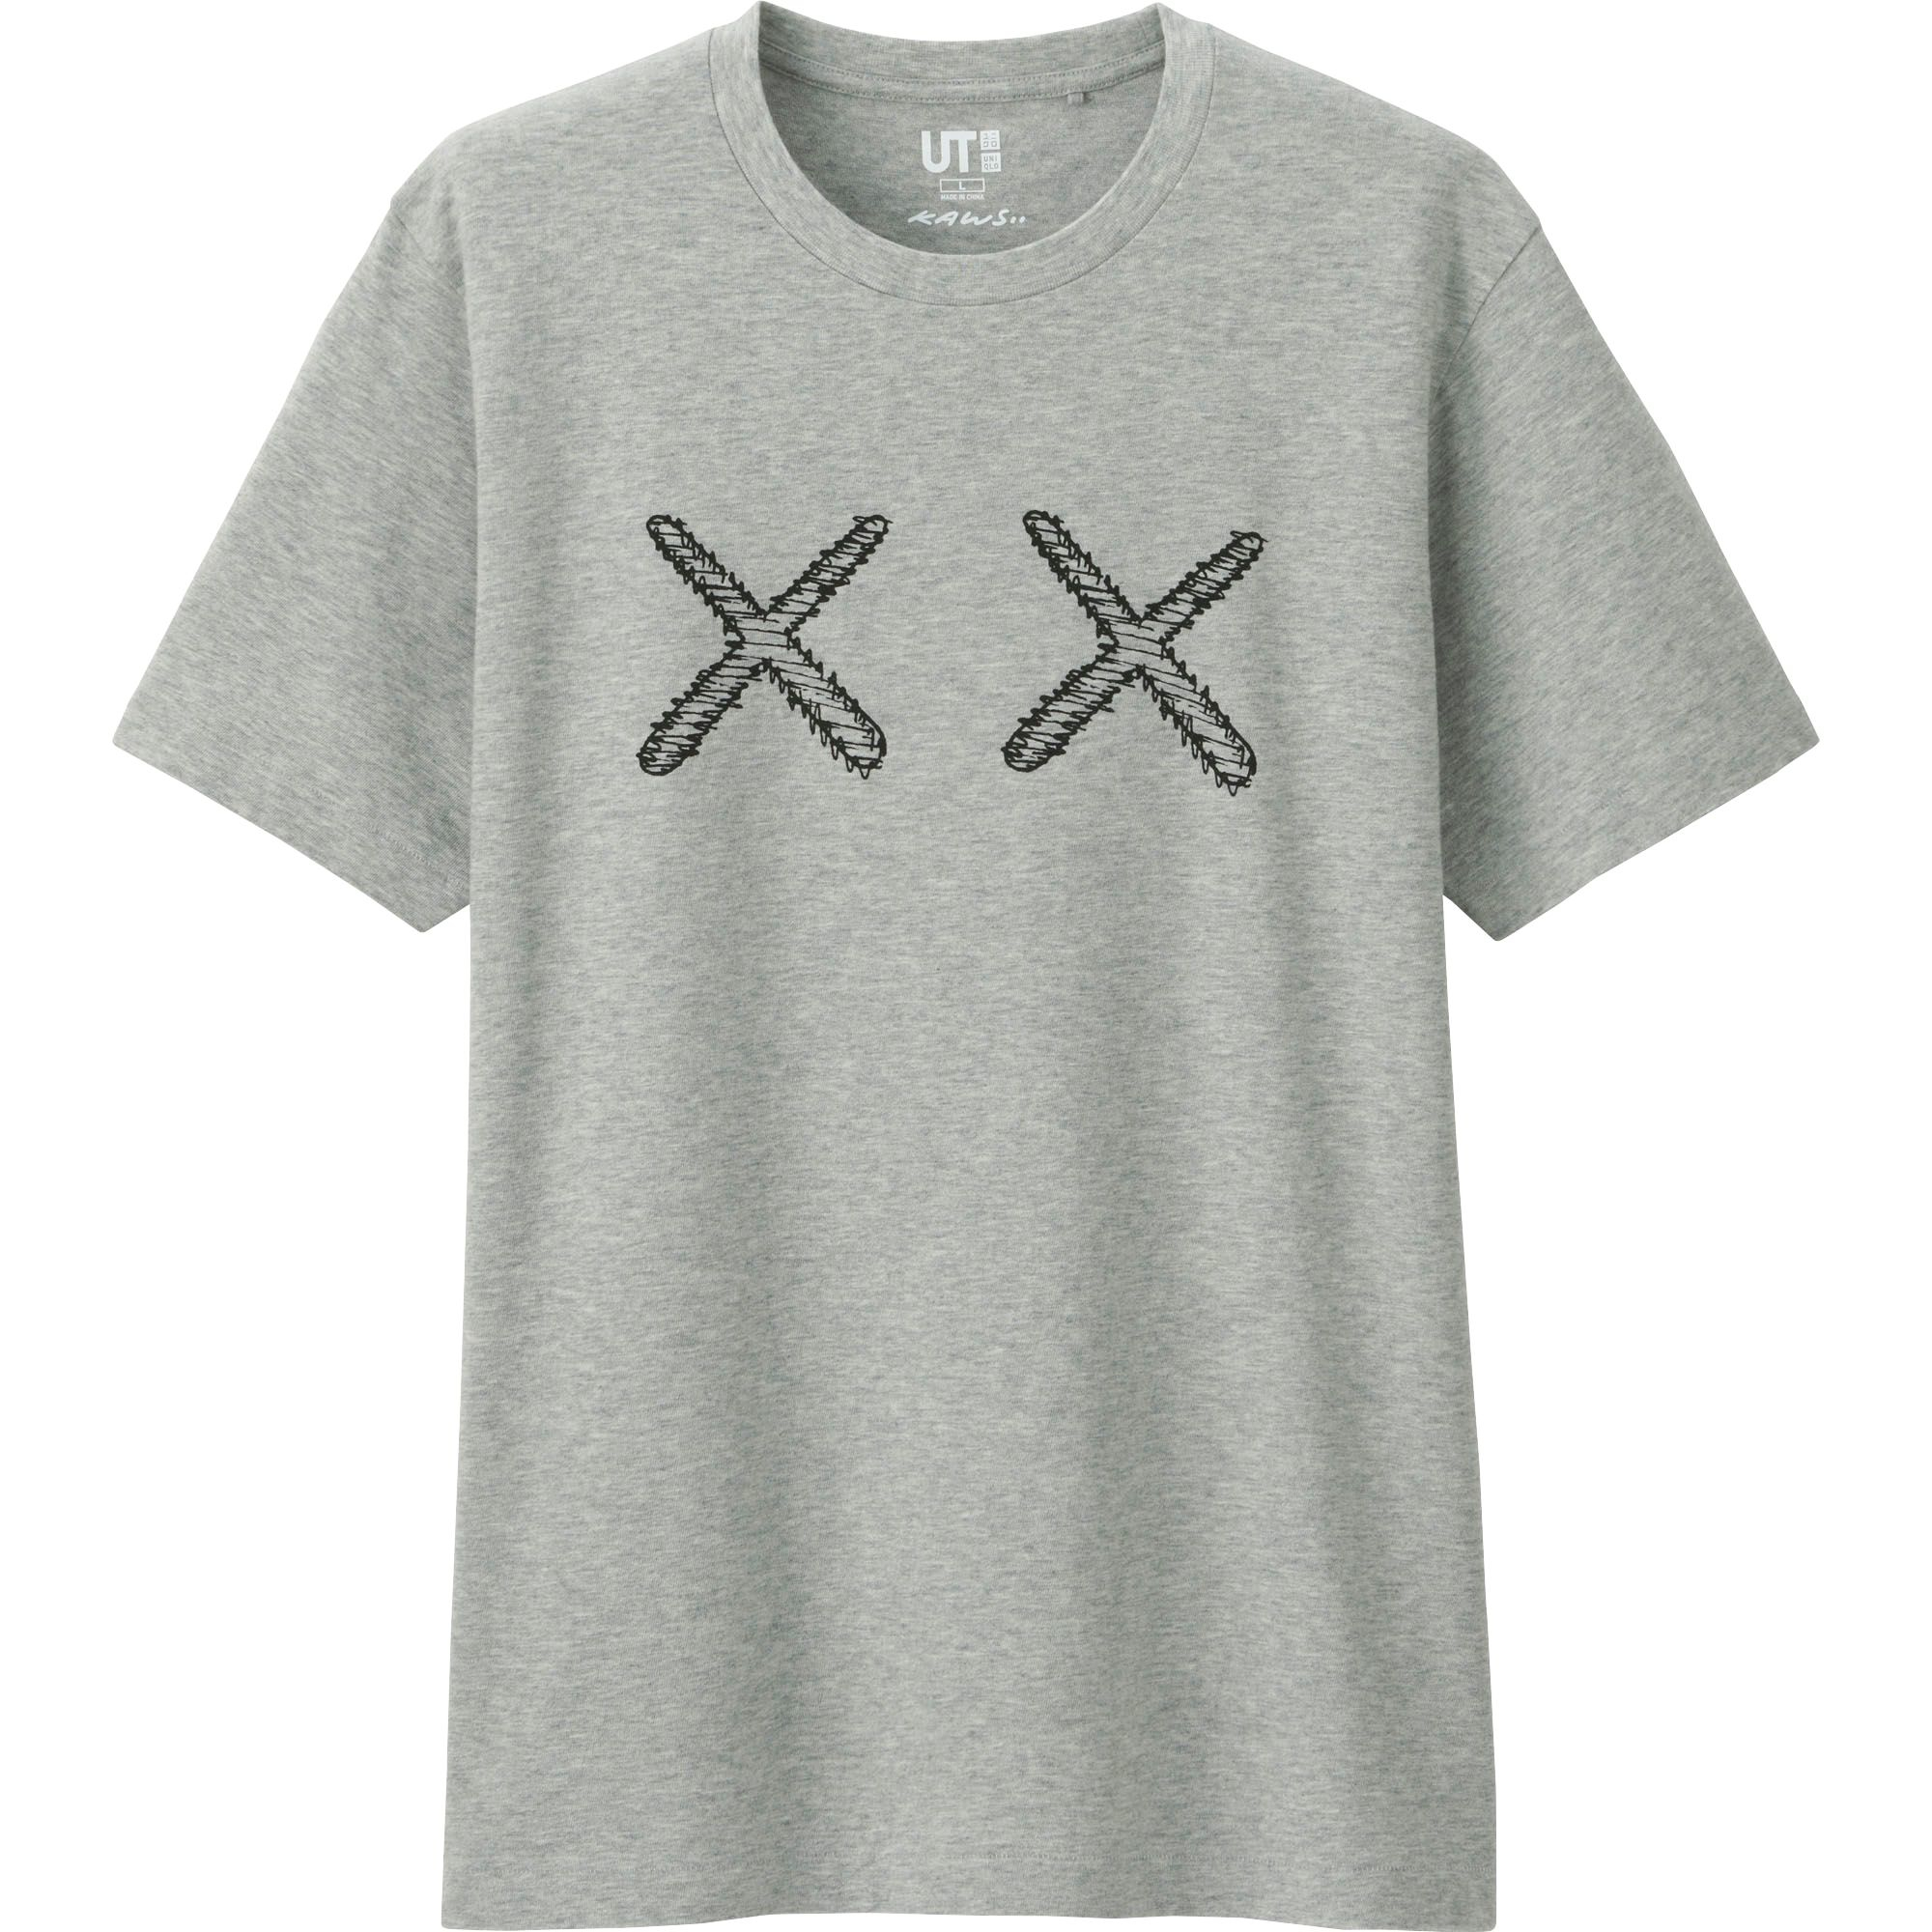 Uniqlo men 39 s kaws graphic tee japan size in gray for men for Uniqlo t shirt sizing